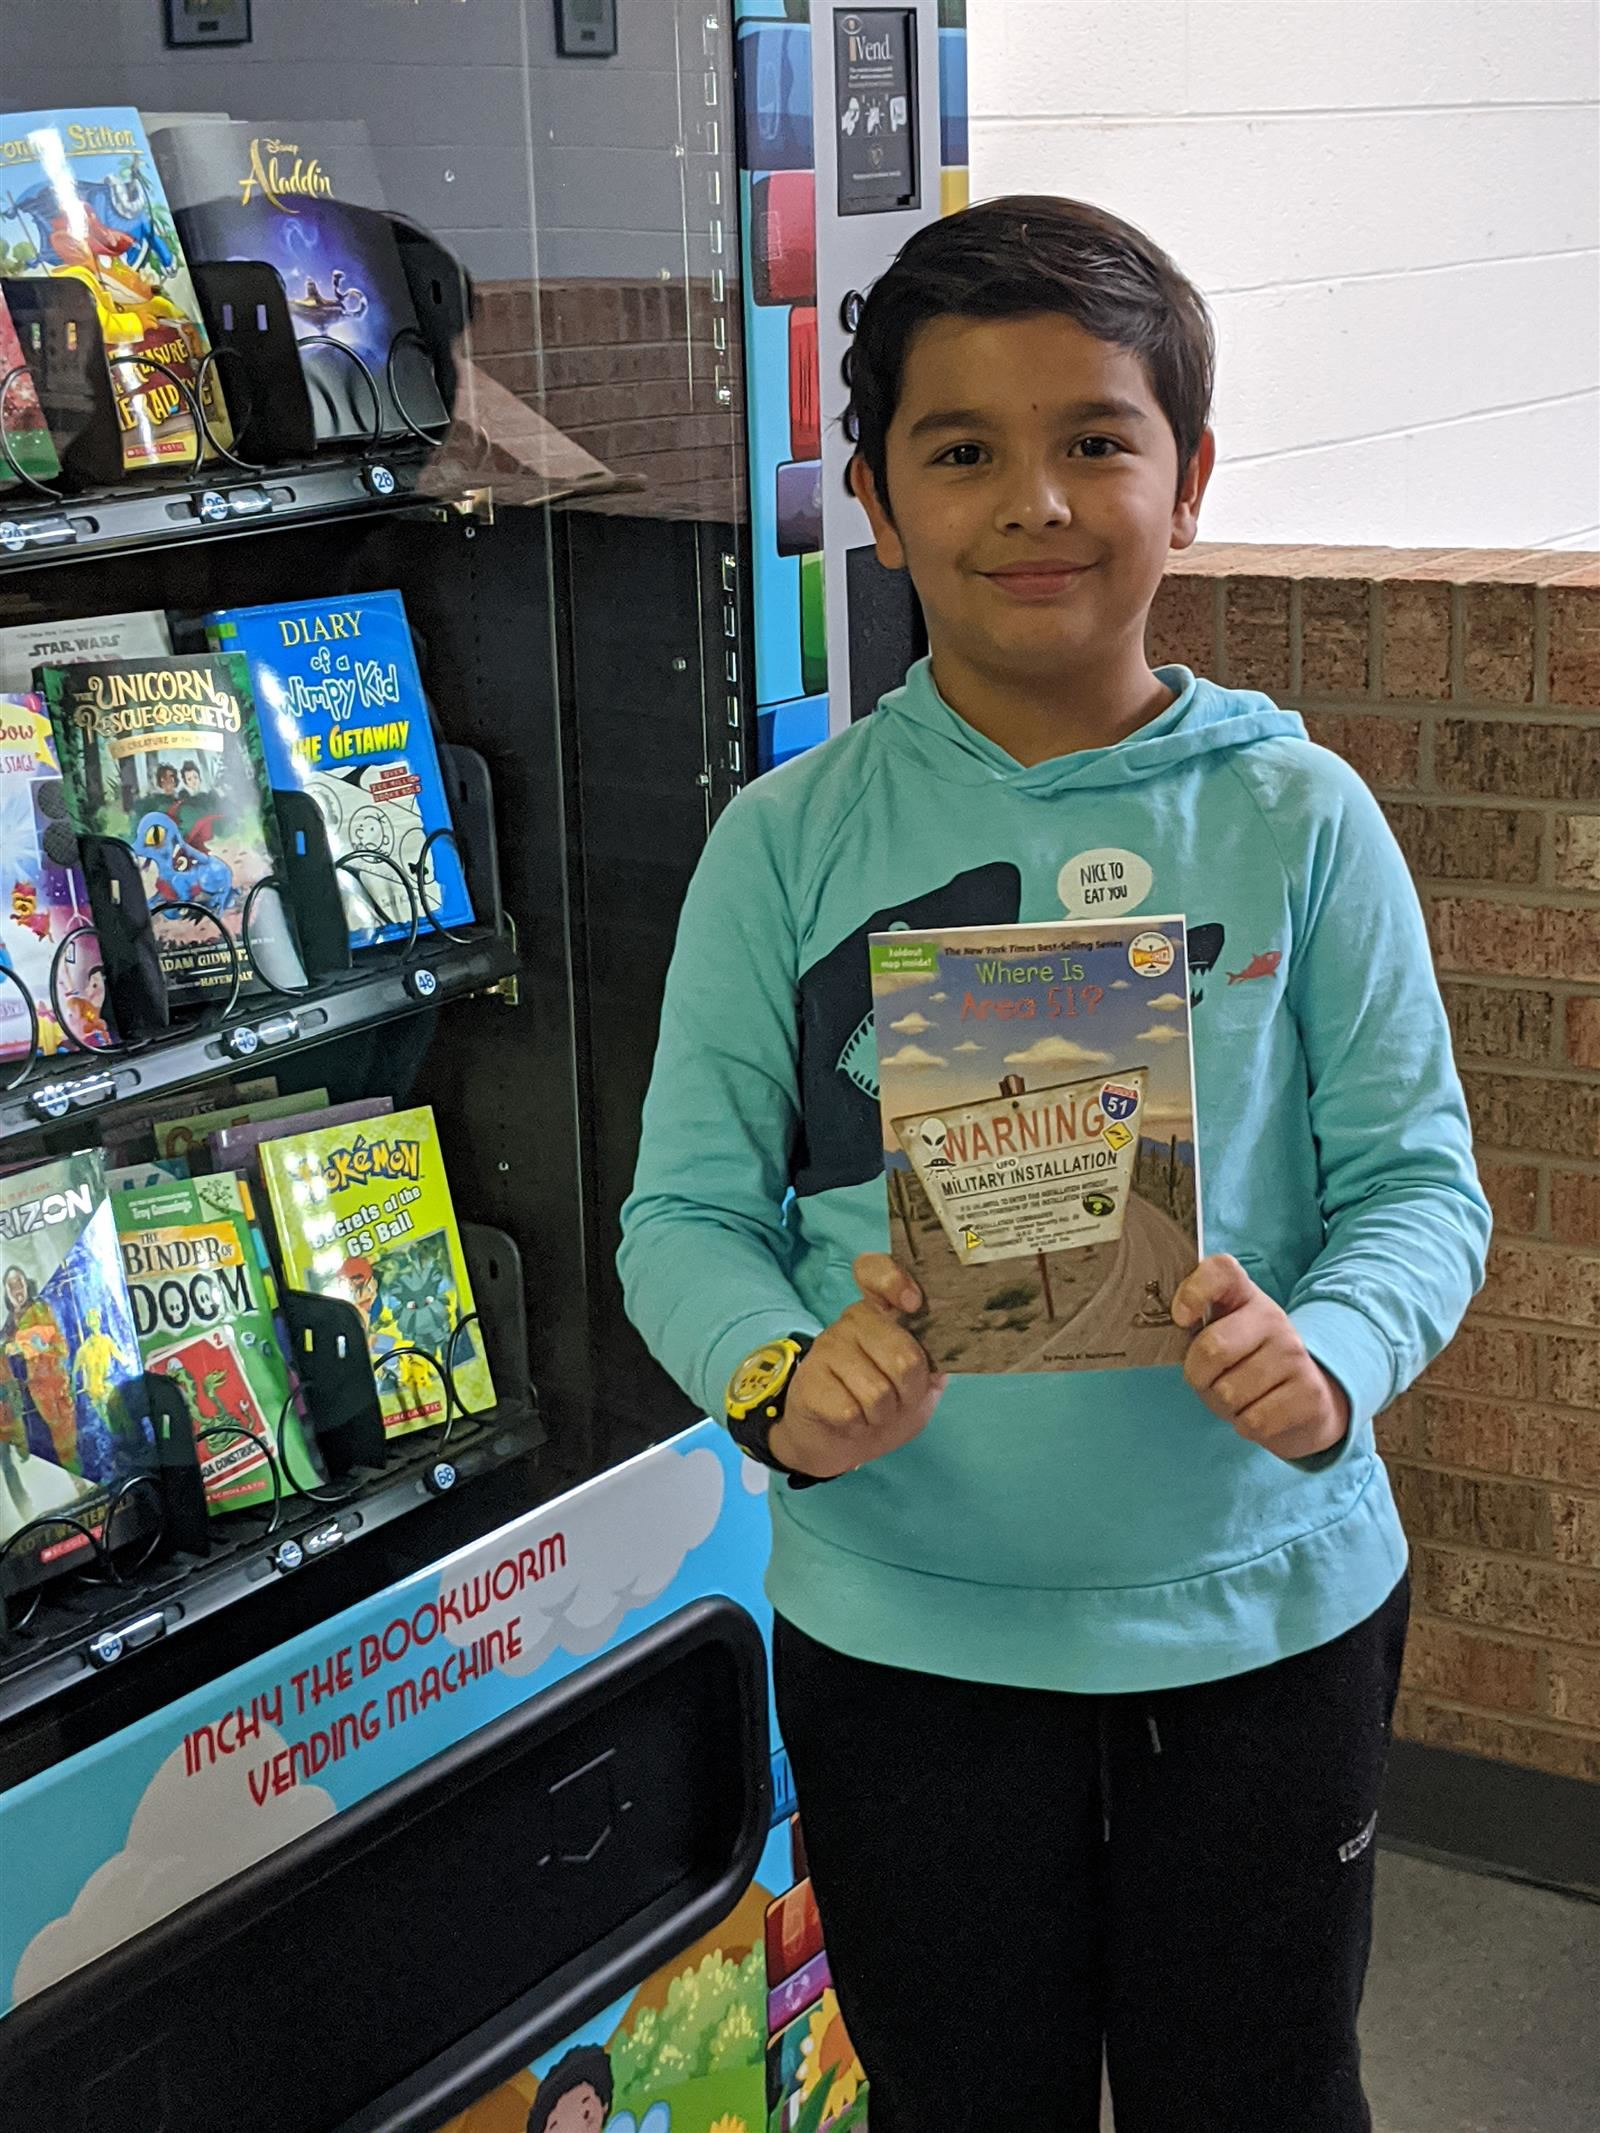 boy holding book by vending machine